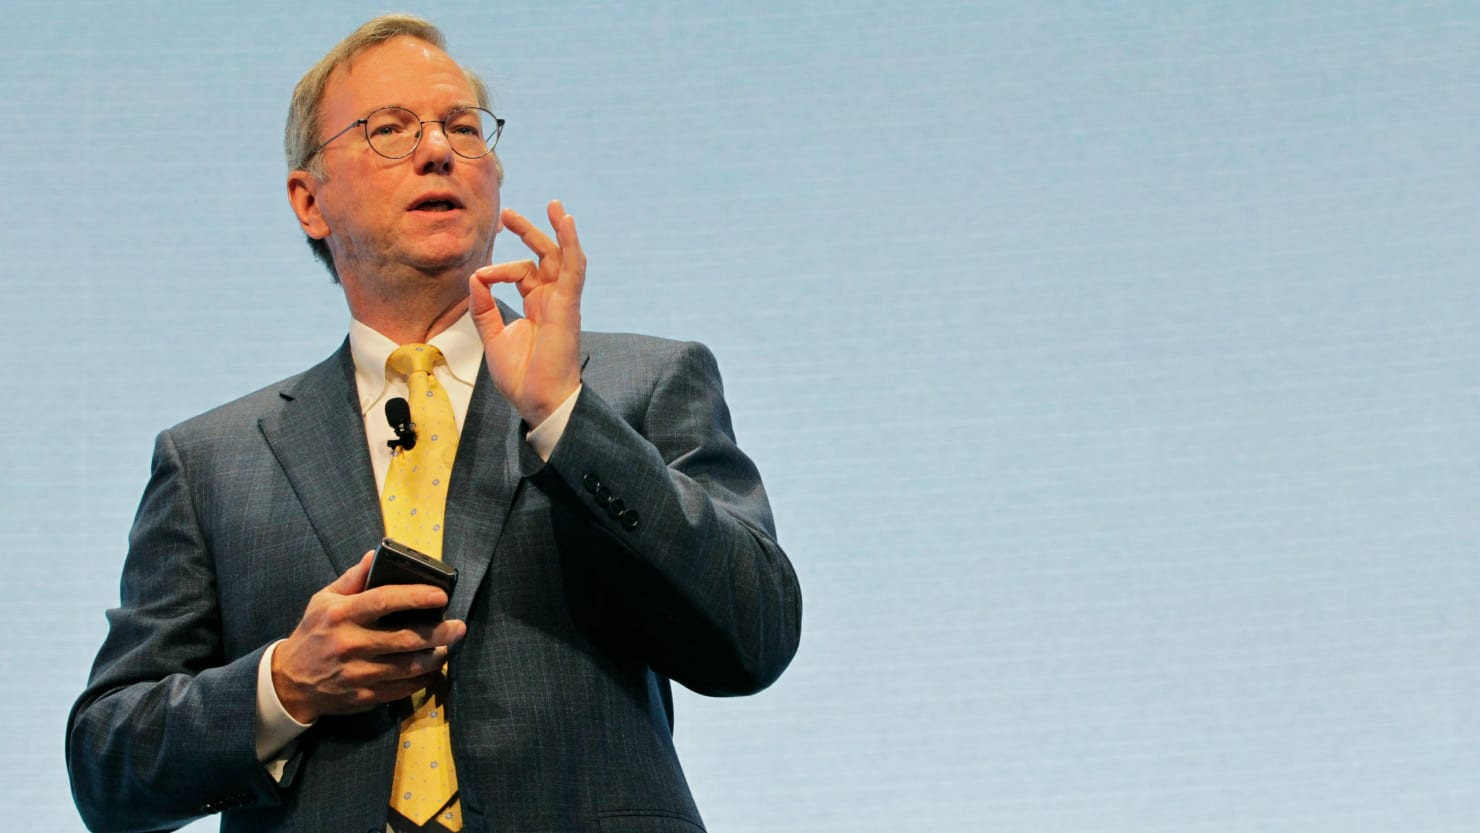 Eric Schmidt Stepping Down as Alphabet CEO - The Daily Beast